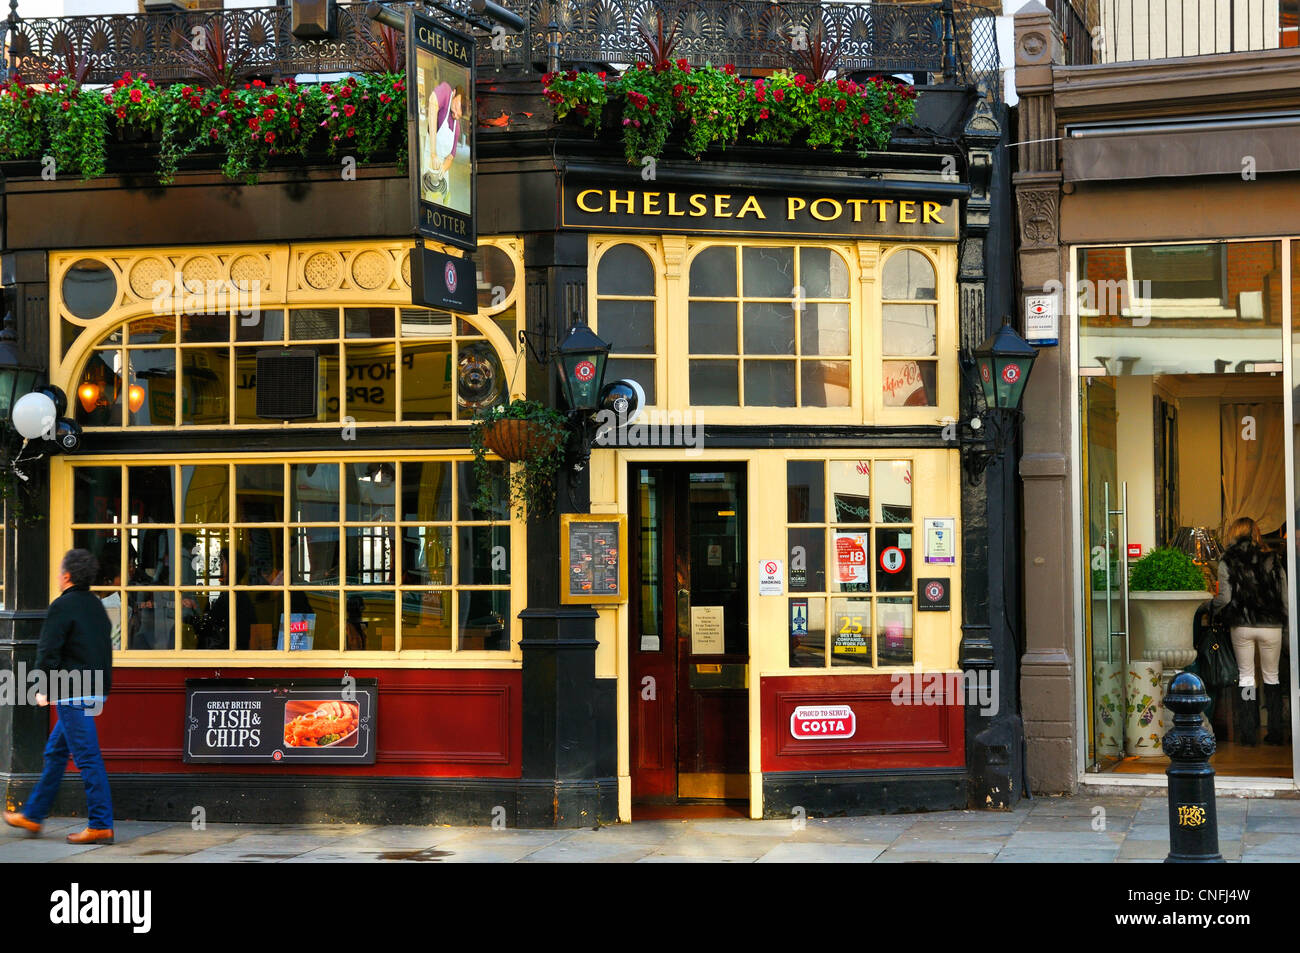 Chelsea Potter pub, King's Road, Chelsea, London, SW3 - Stock Image